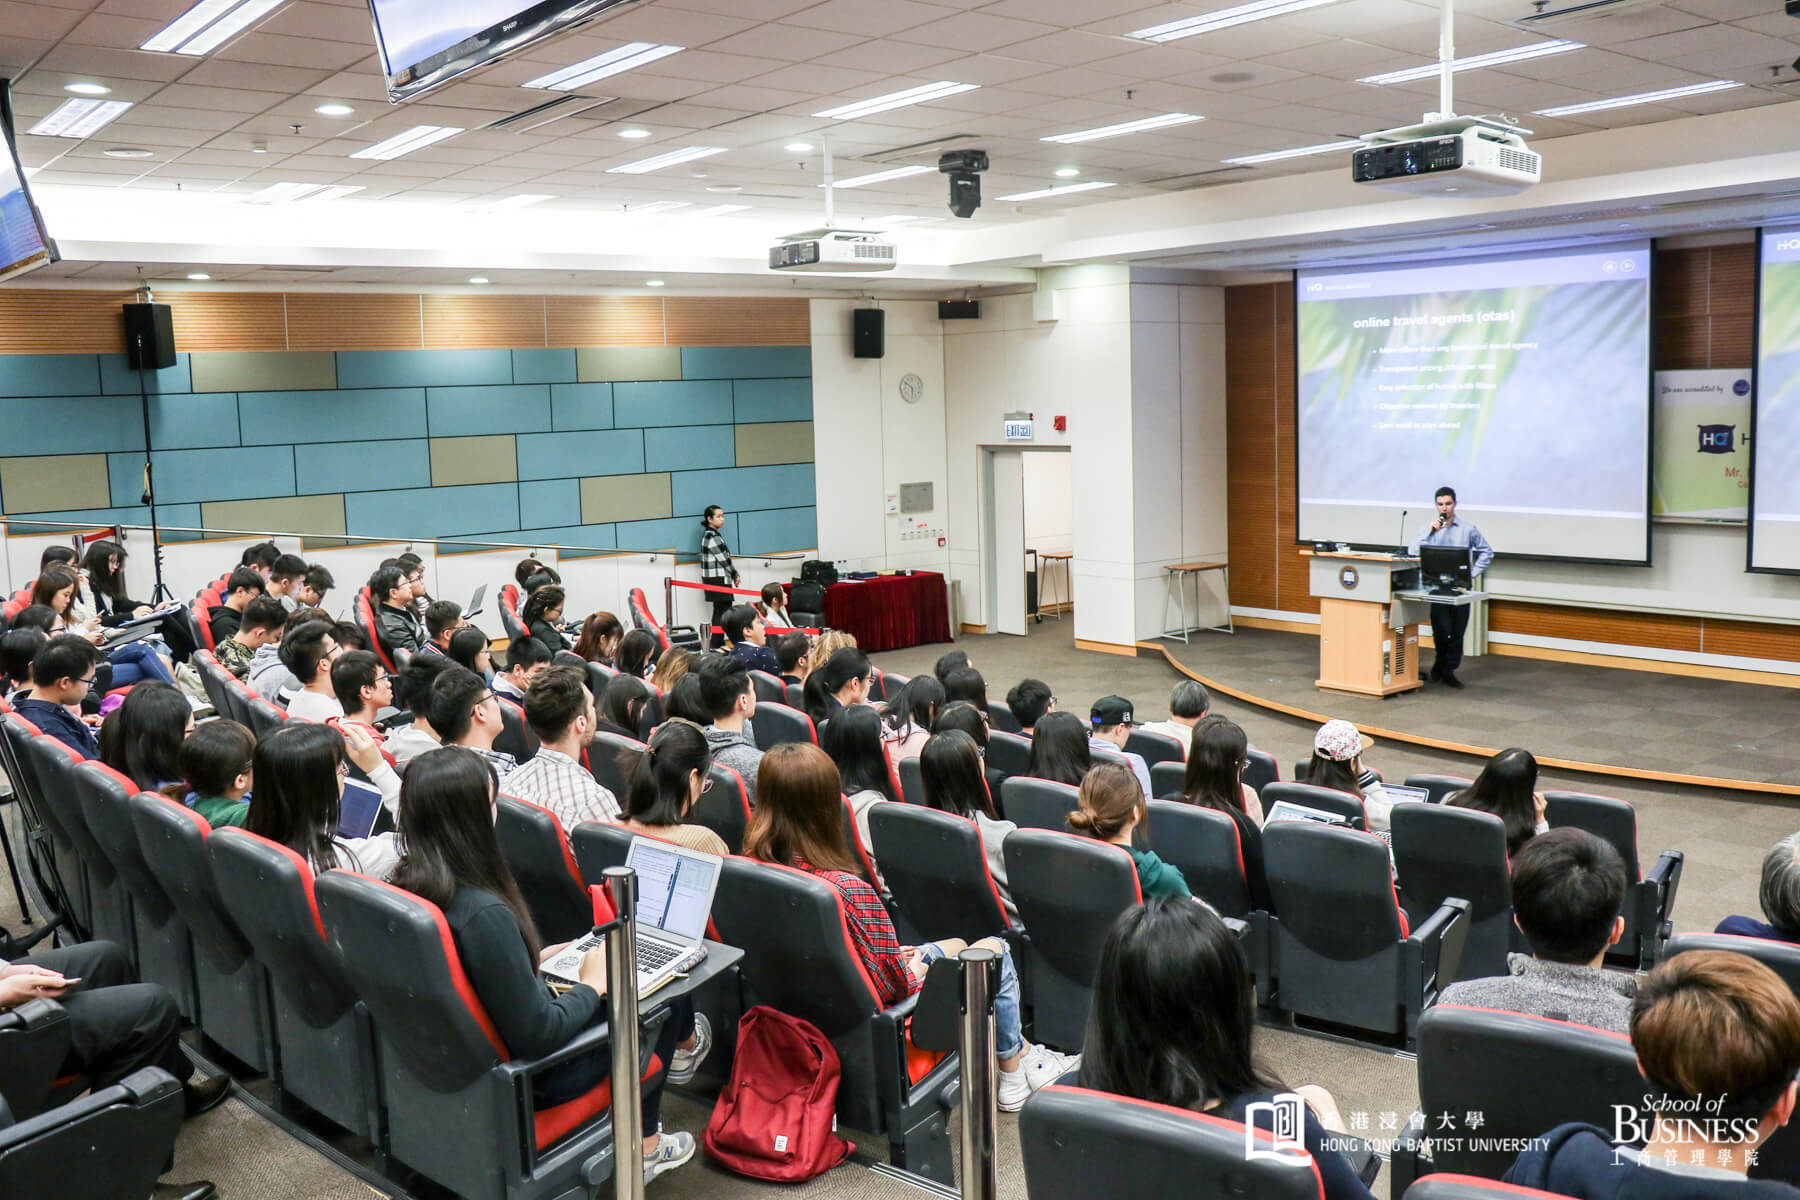 Hong Kong Baptist University- Lecture Theatre at the Wing Lung Bank Building for Business Studies